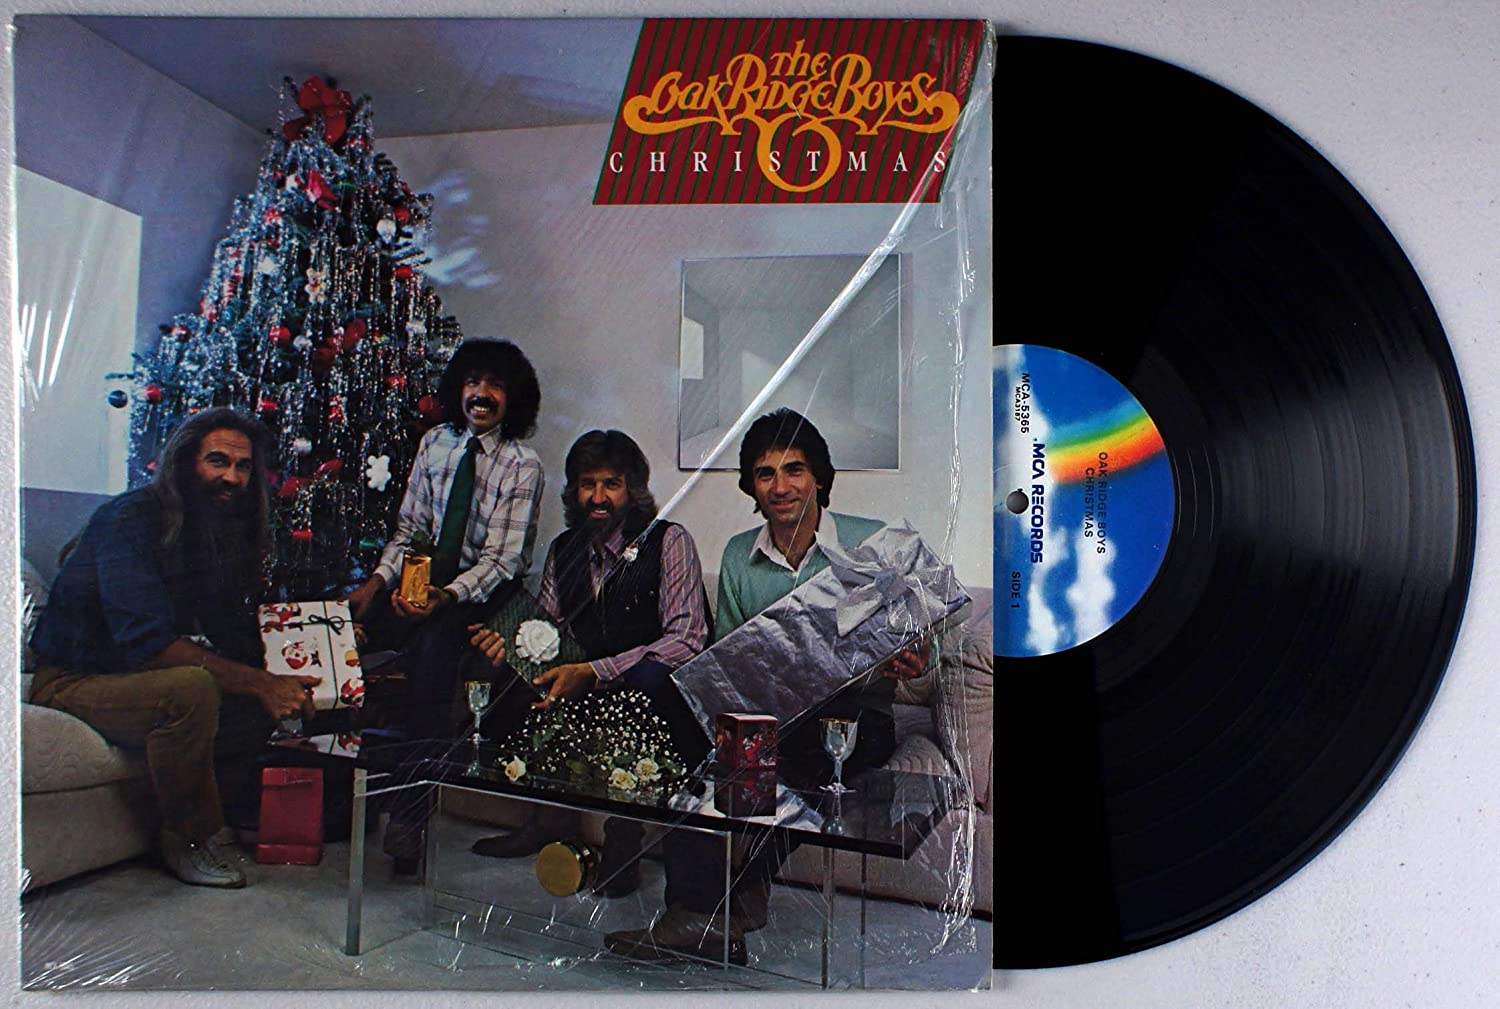 Oak Ridge Boys - Christmas - Amazon.com Music